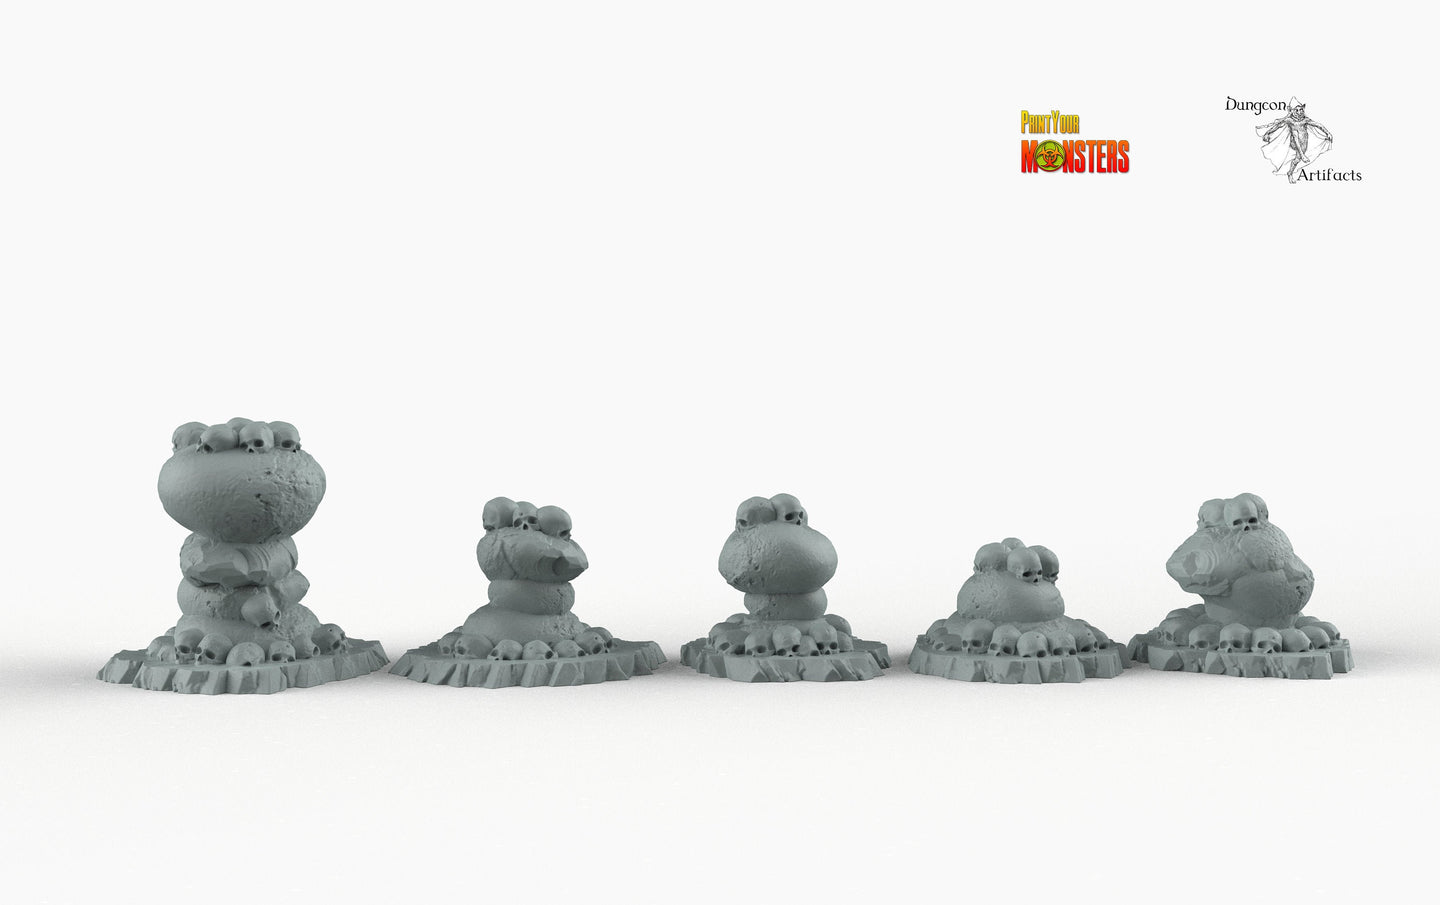 Ancient Cannibal Stones - Print Your Monsters Fantastic Plants and Rocks Resin Terrain Wargaming D&D DnD Pathfinder Warhammer